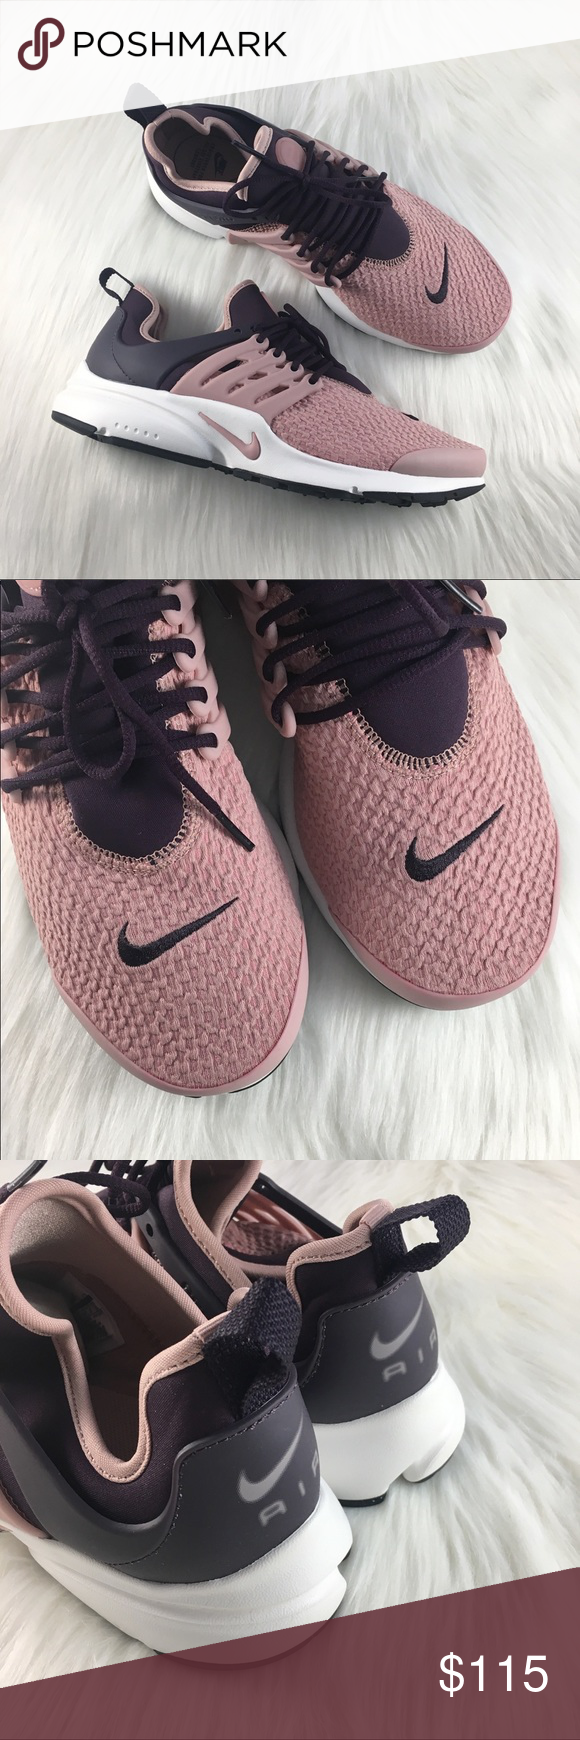 sports shoes 9bdfd ede06 Women s Nike Air Presto Particle Pink Sneakers Women s Nike Air Presto Port  Wine Particle Pink